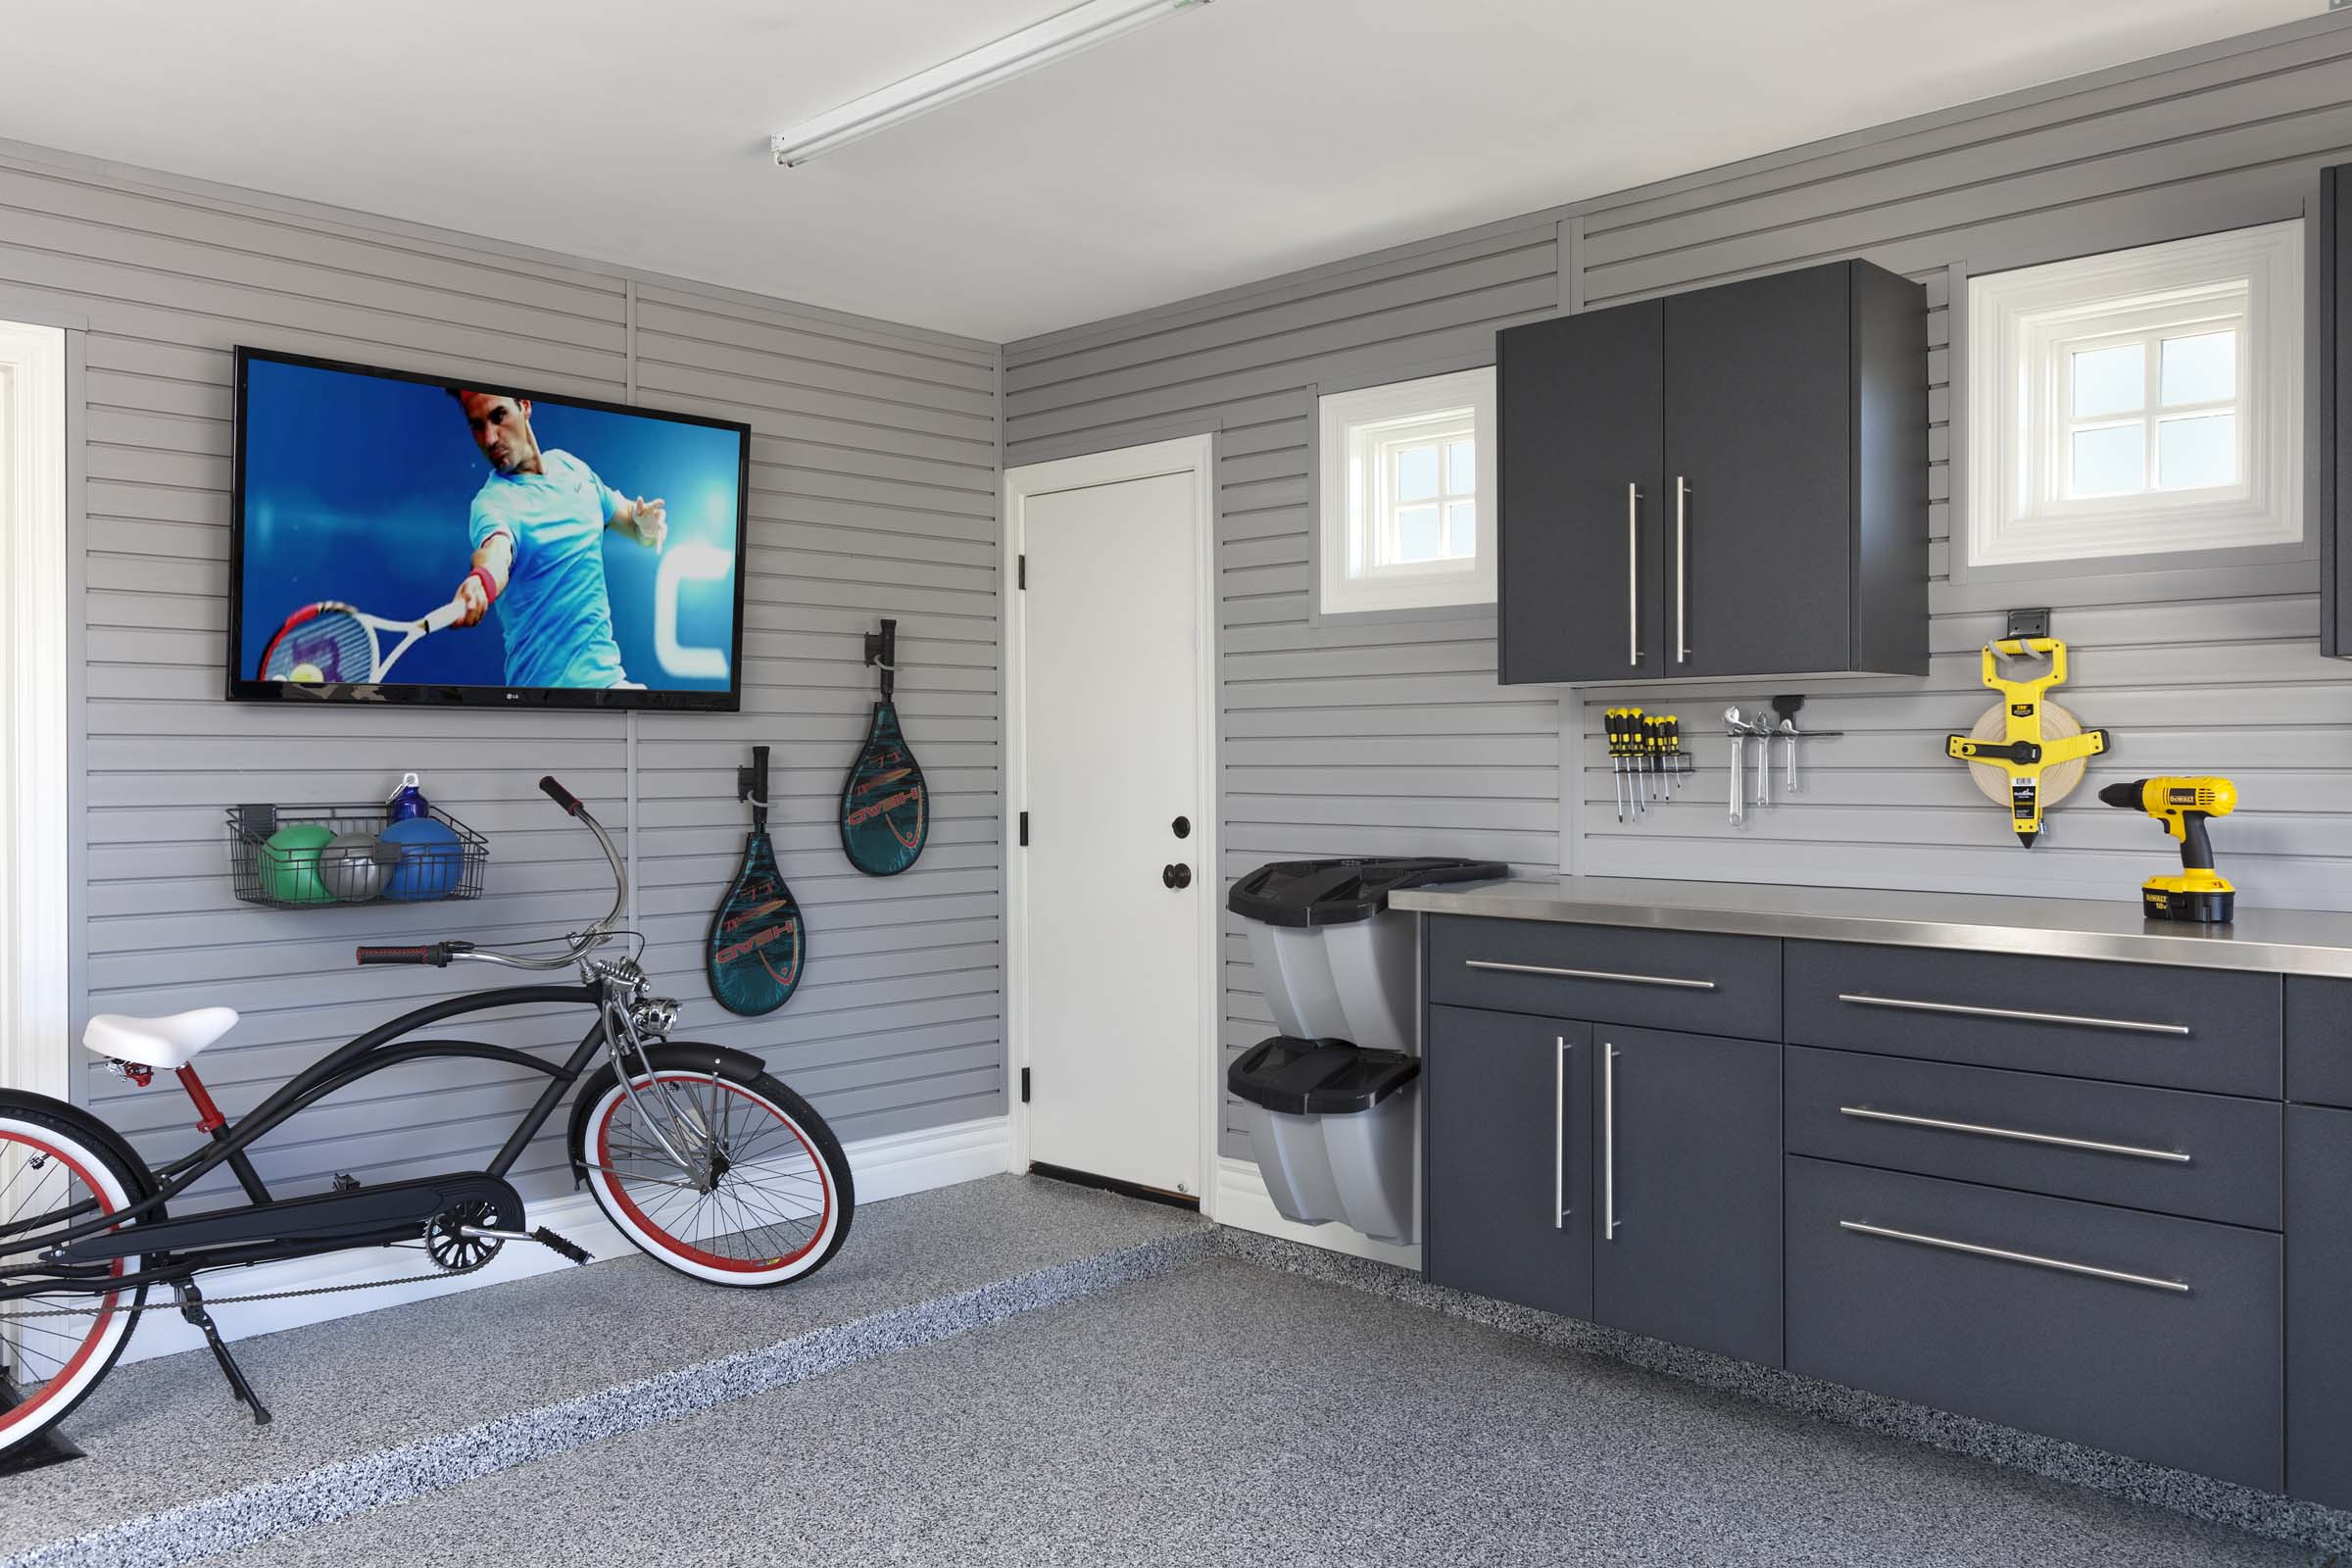 Granite Workbench-Stainless Counter-Grey Slatwall with TV HandiNet-Bike-Smoke Floor-Arcadia 2013